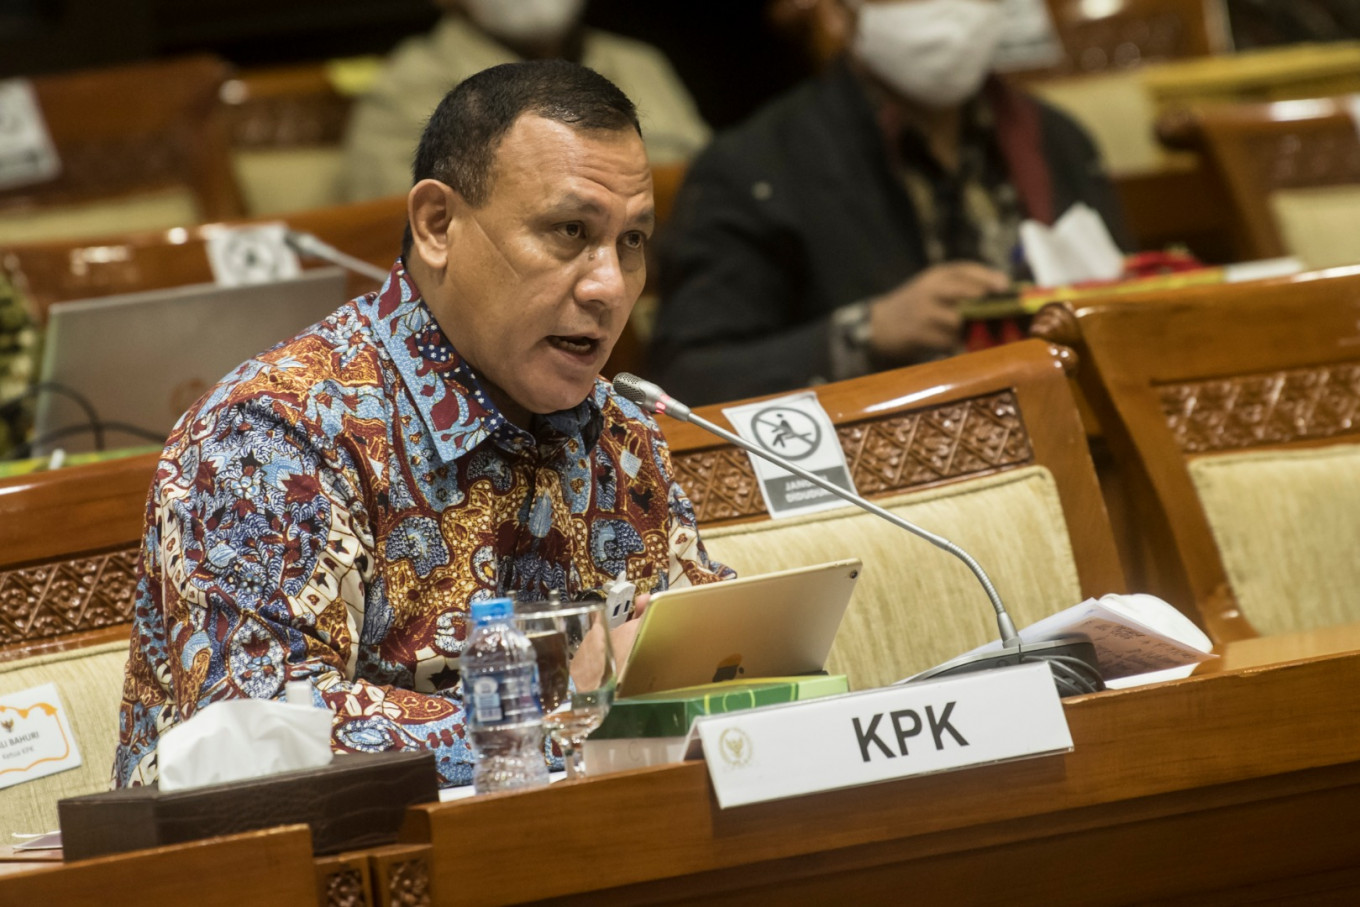 Supervisory council questions KPK chairman over alleged ethics violation